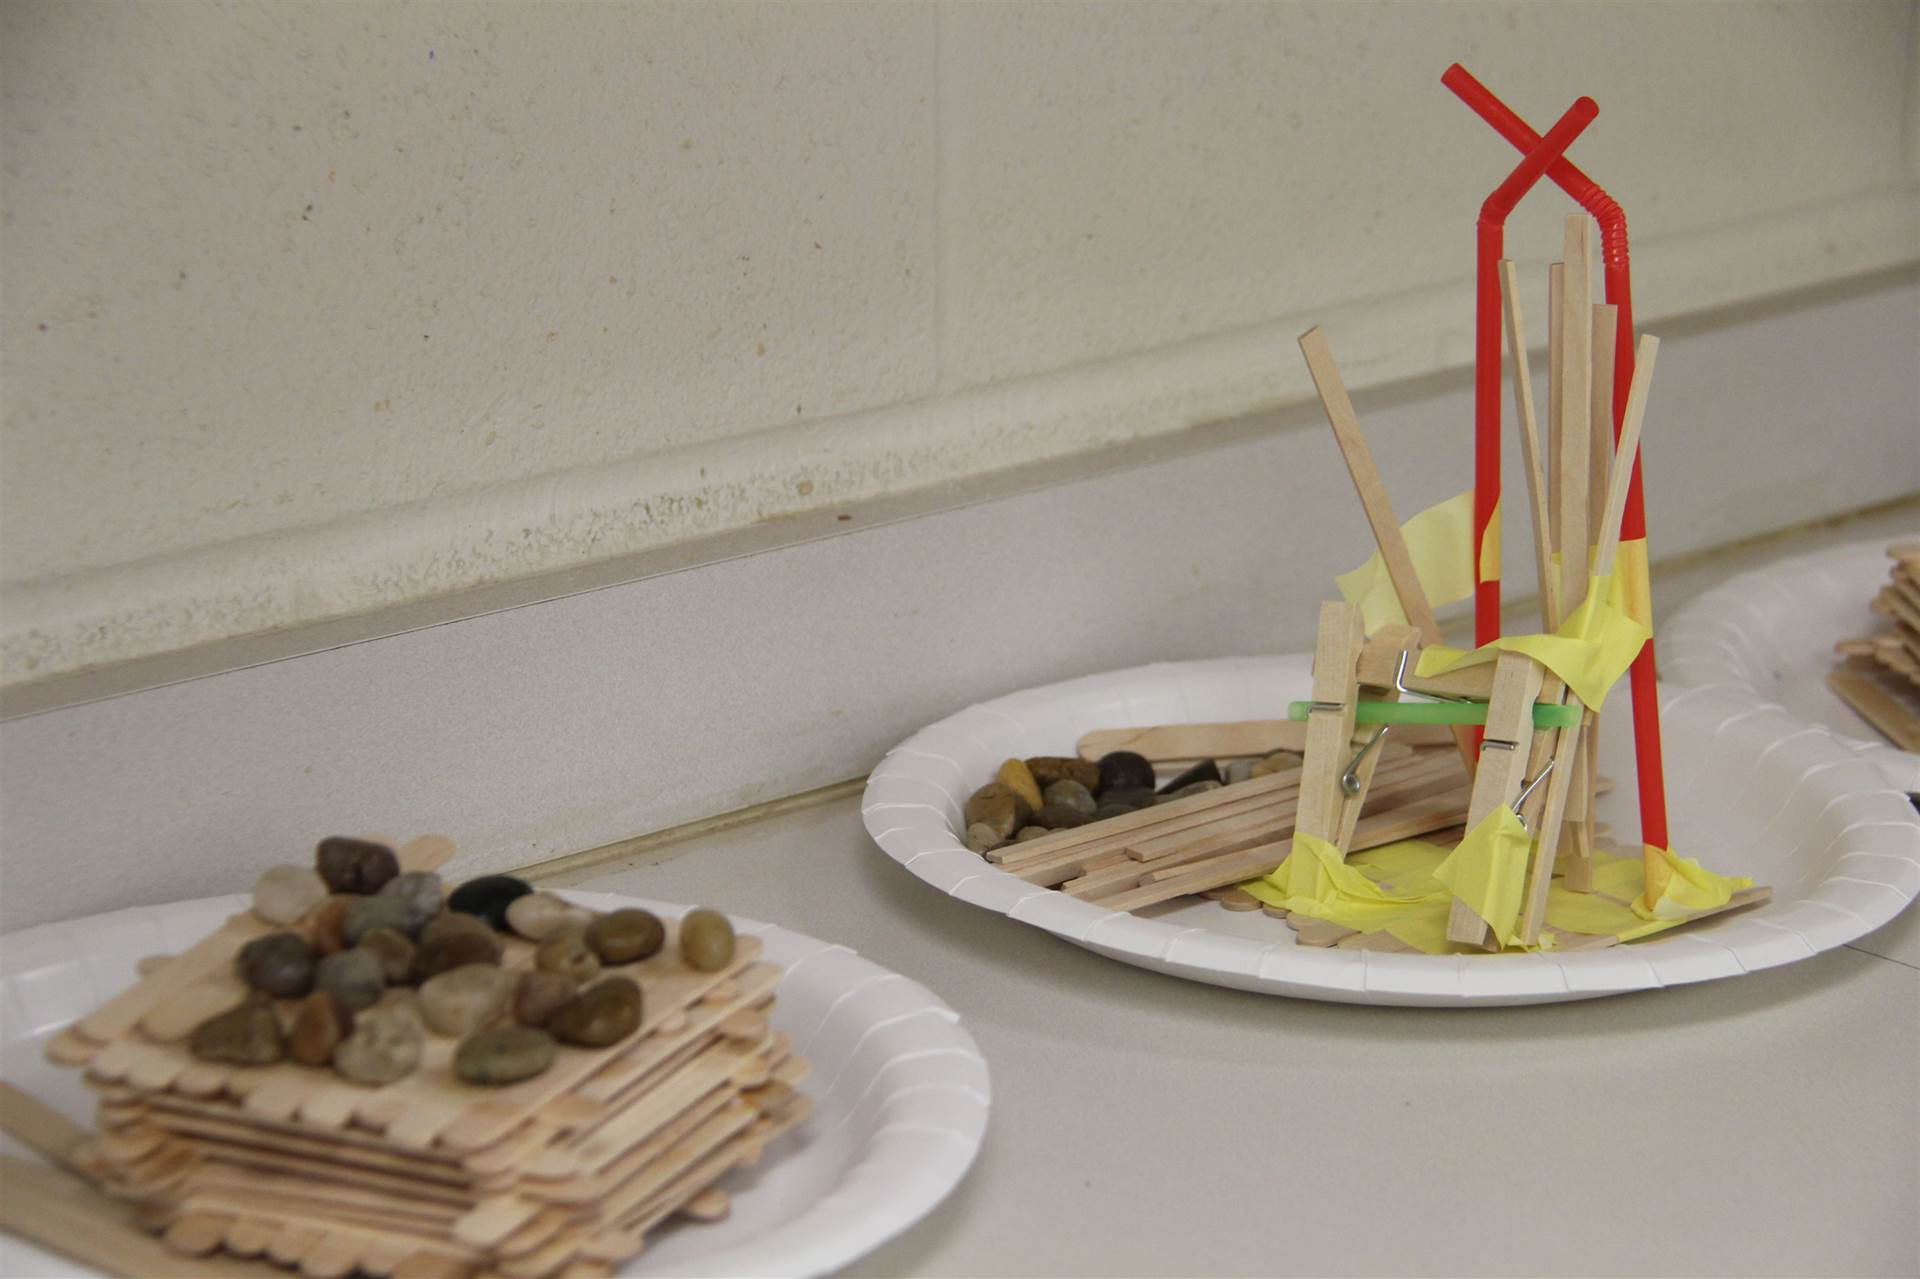 summer steam three little pigs houses challenge houses made of different objects.